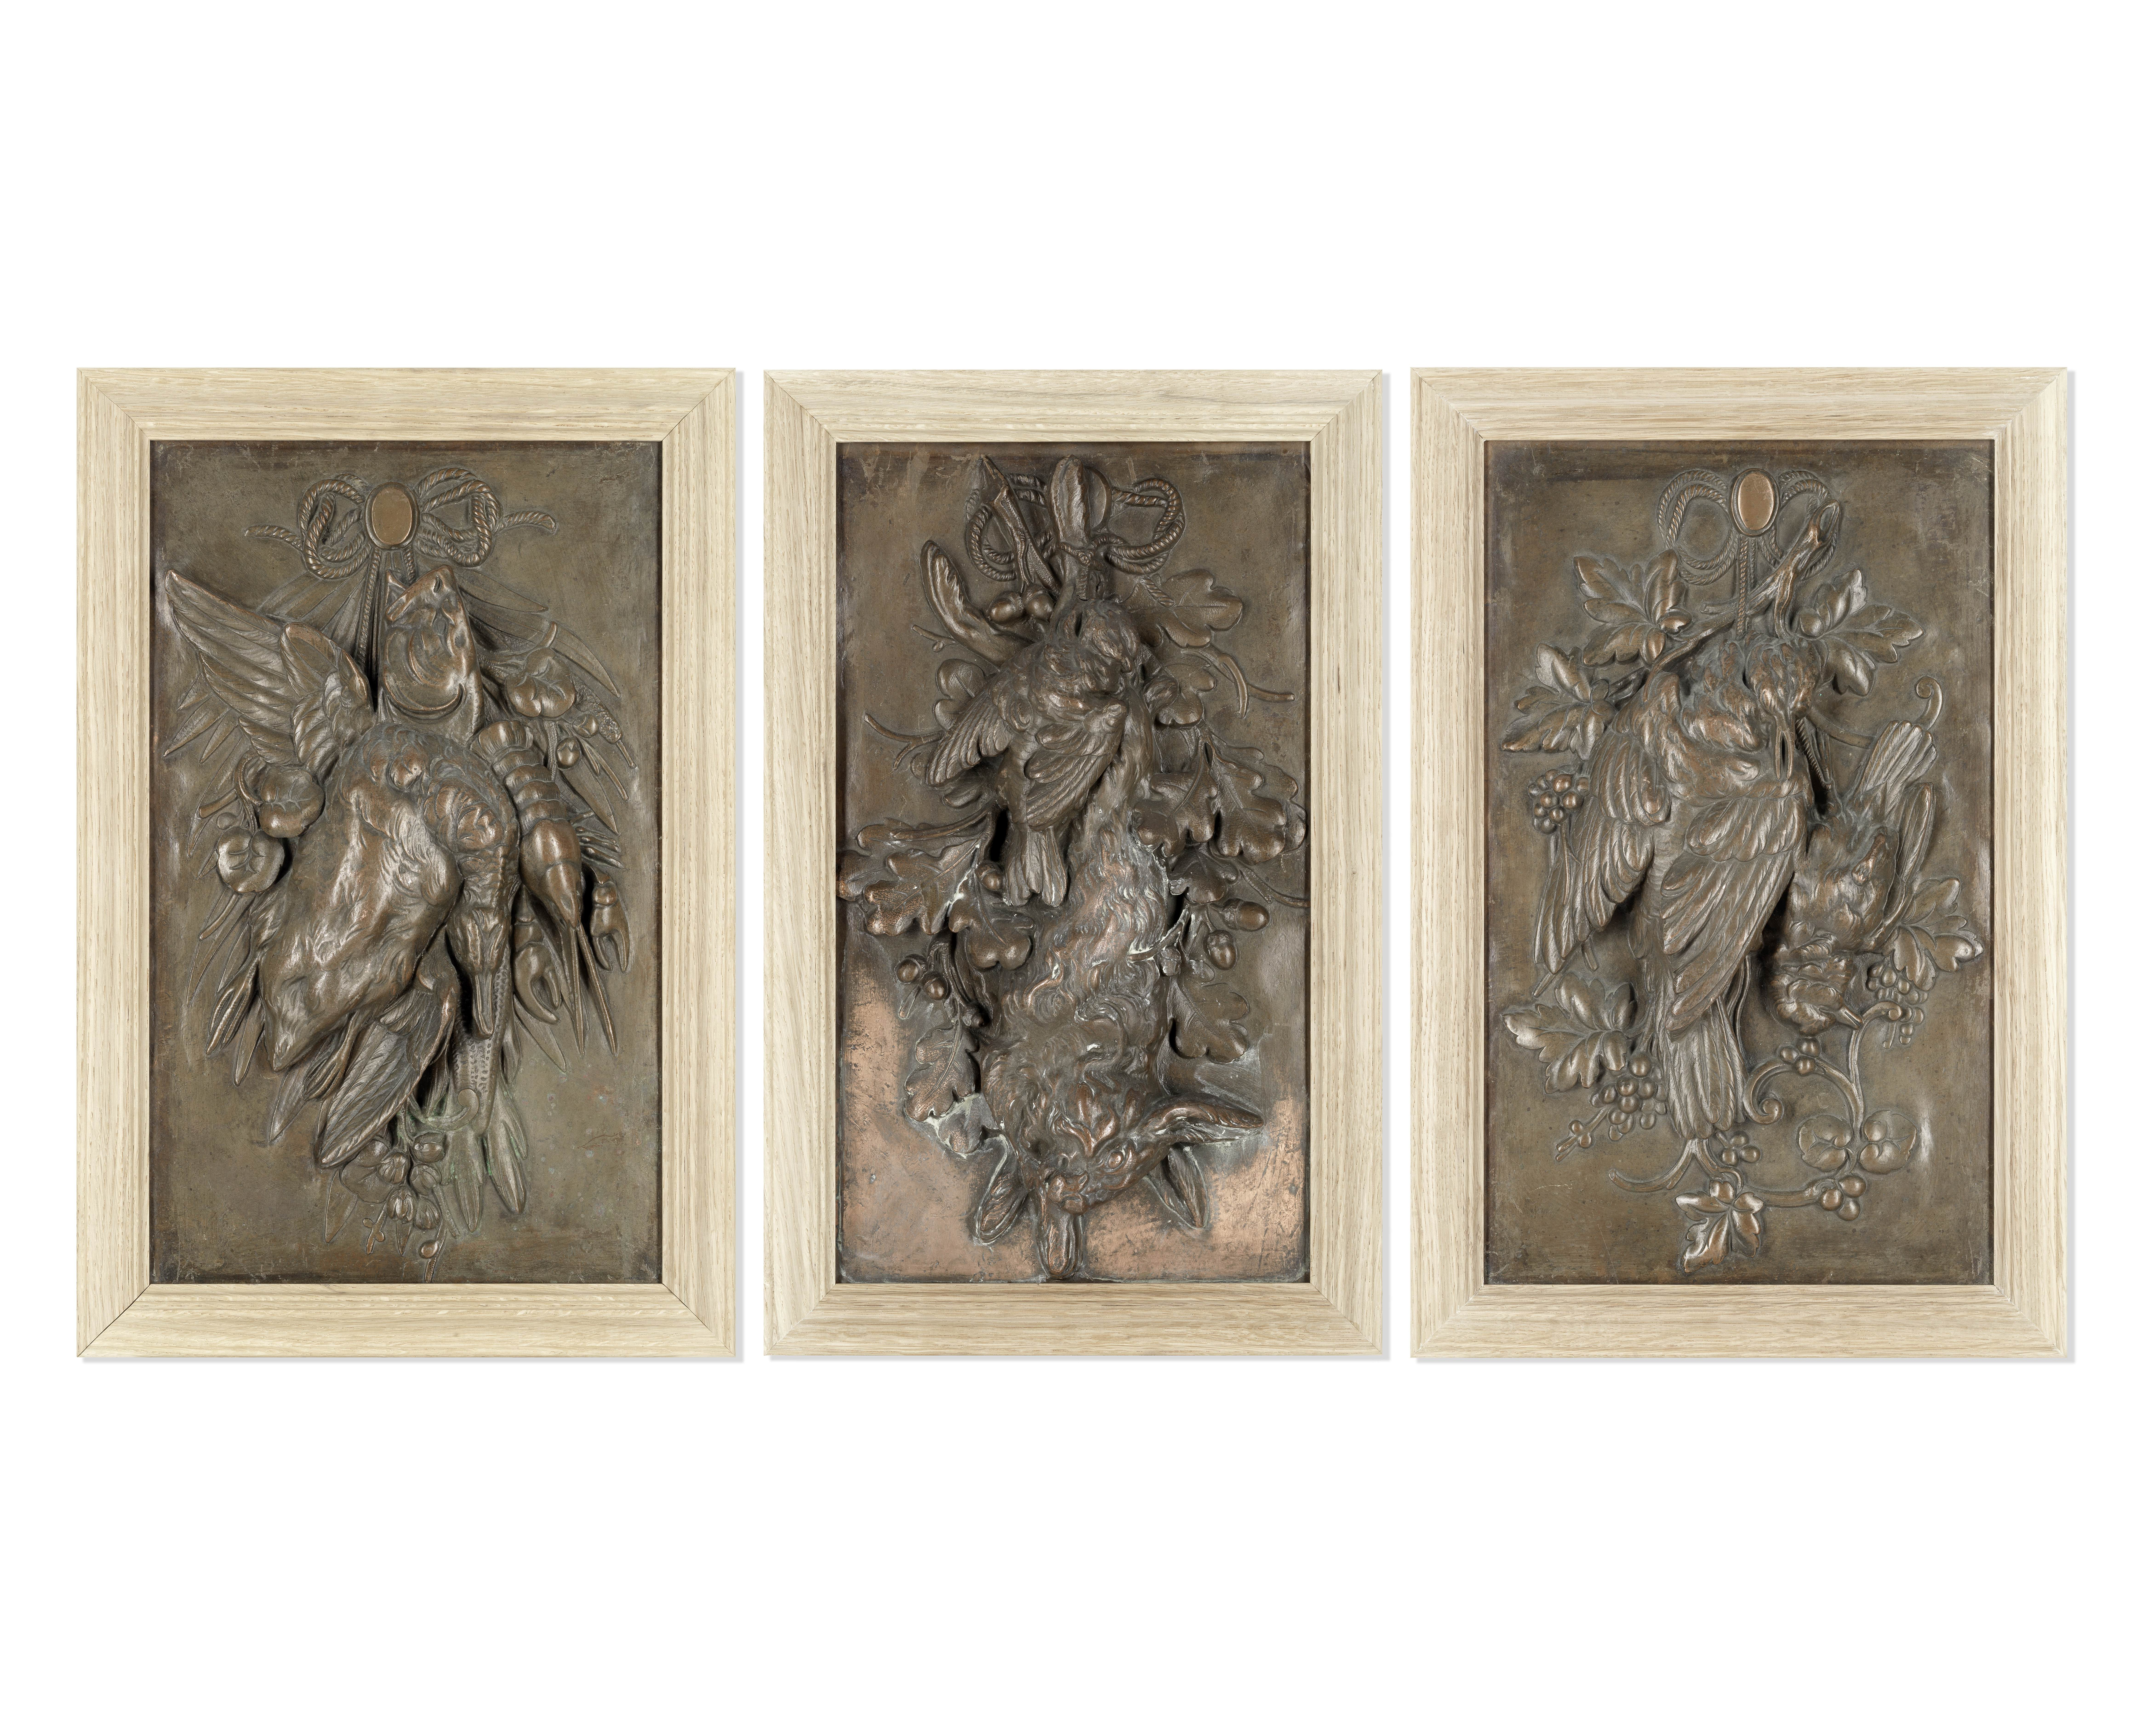 A near set of late 19th/early 20th century French bronzed copper repoussé cast dead game rel...